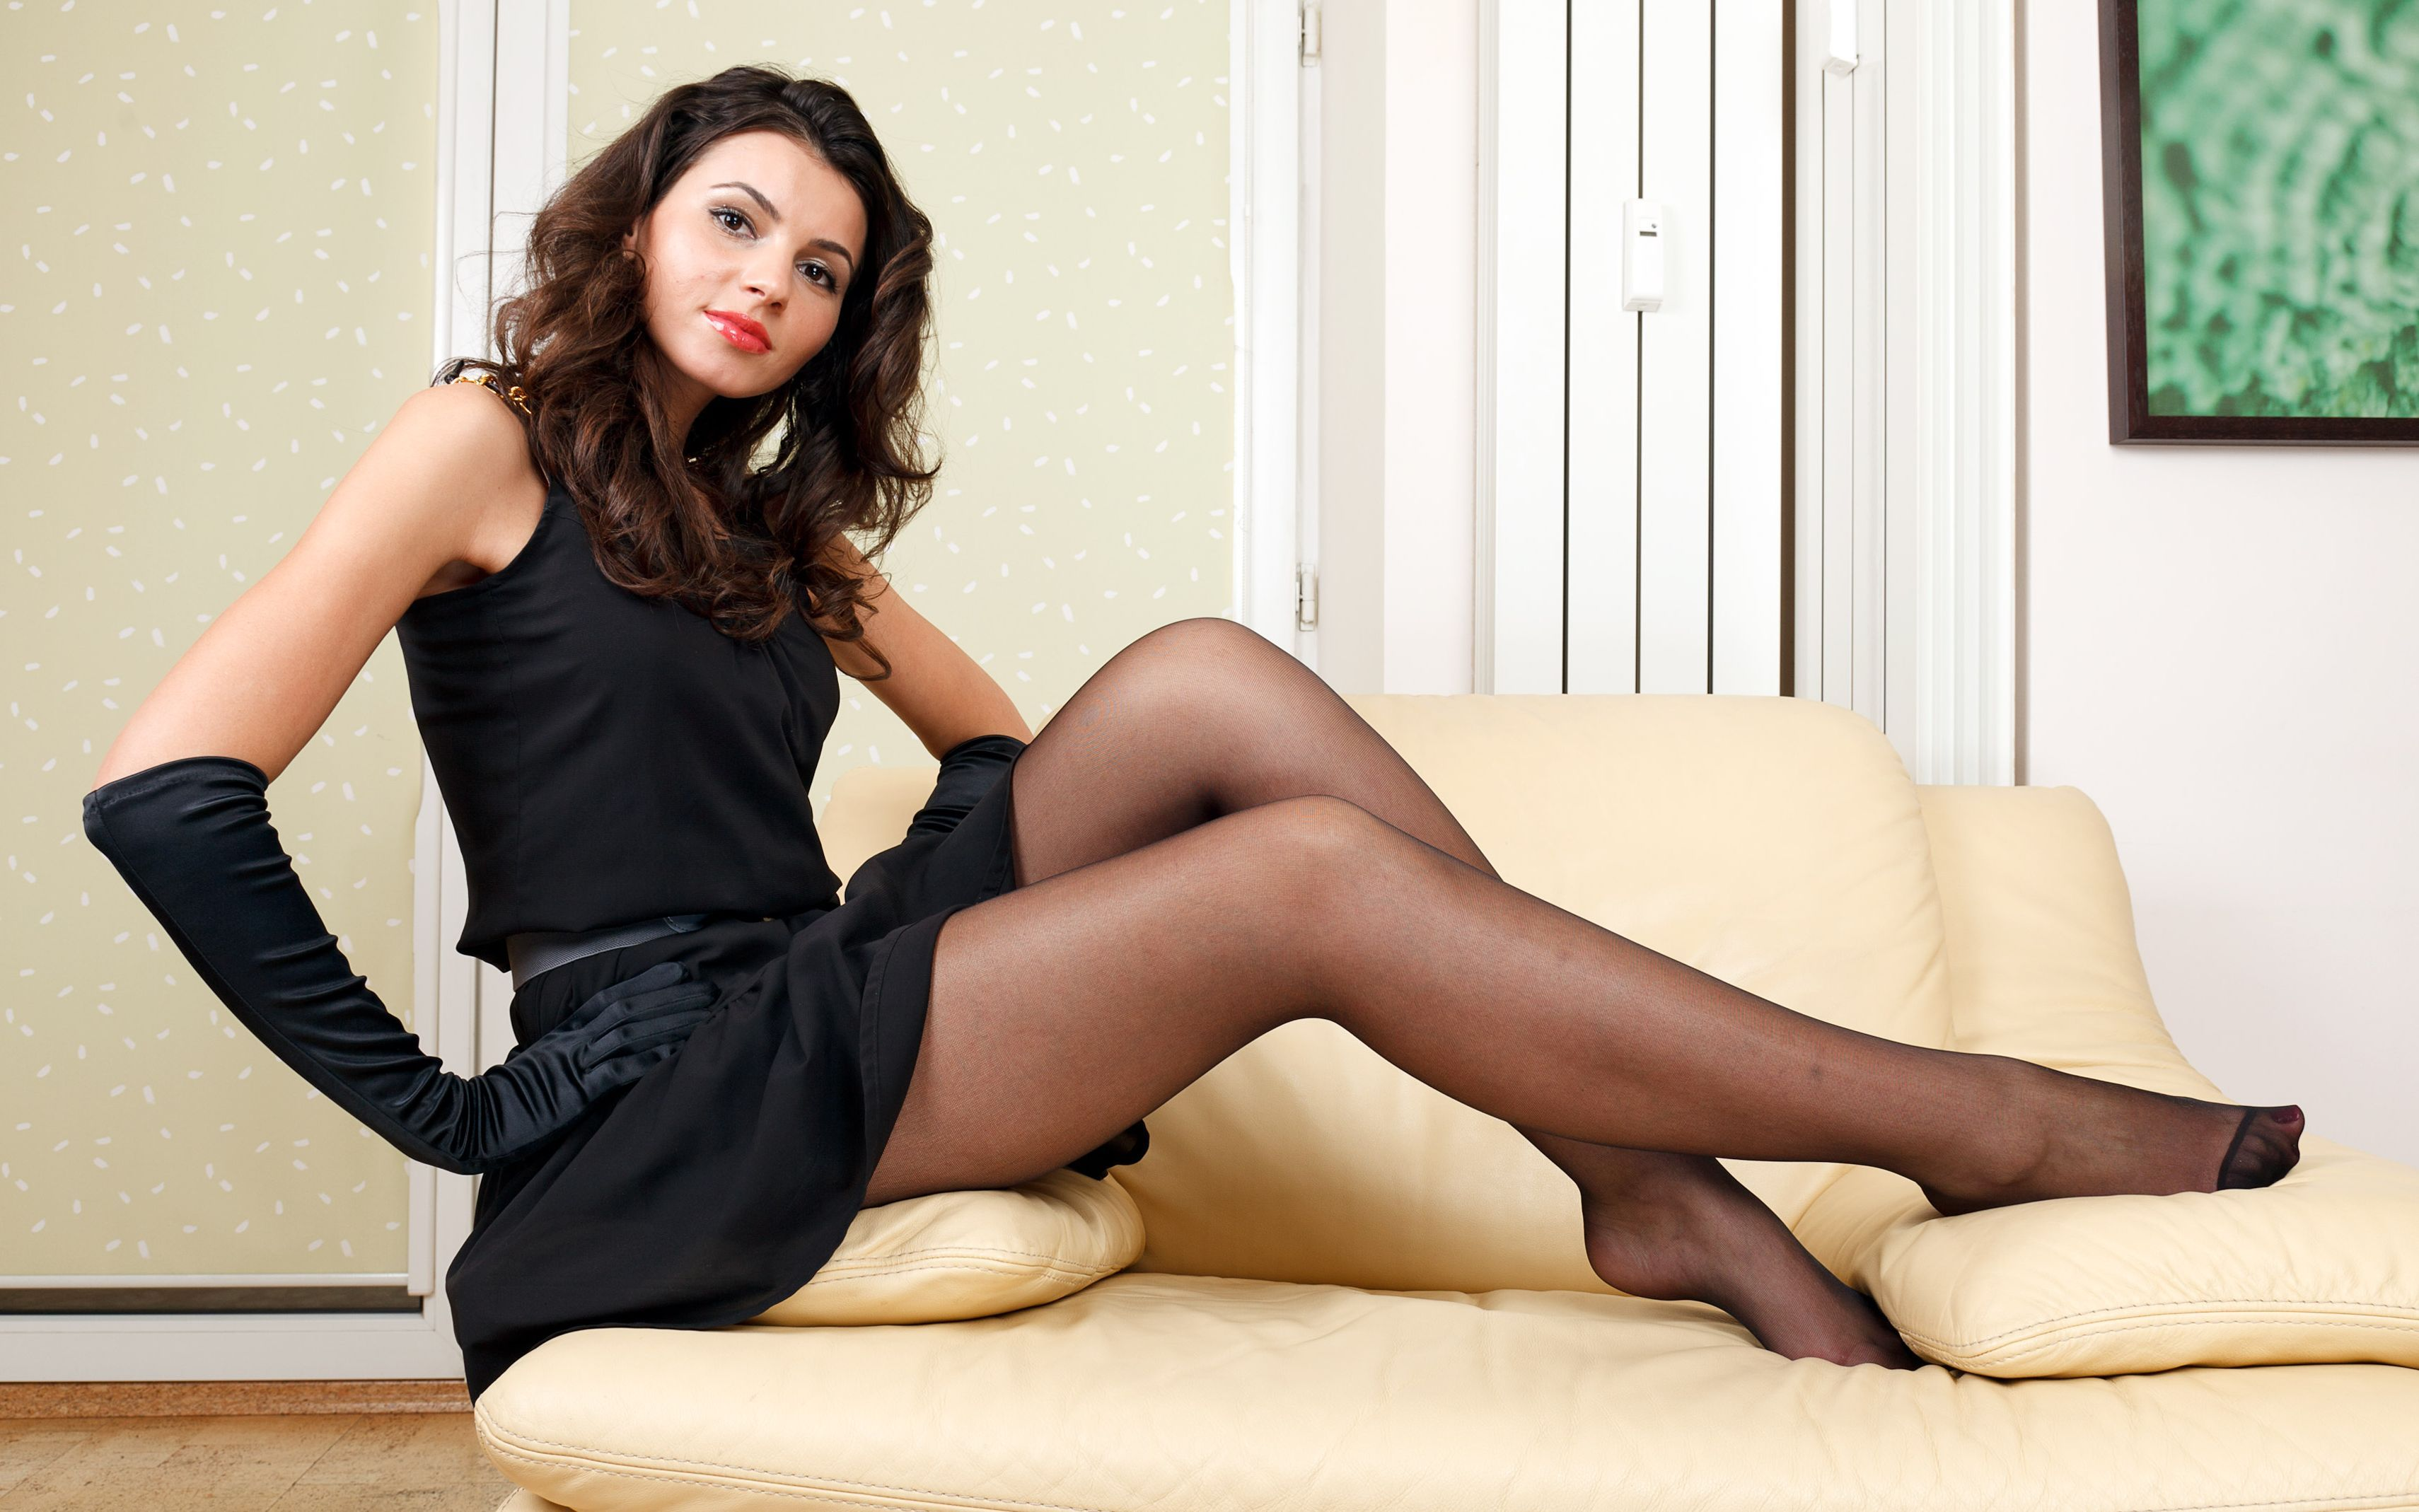 Teen glamour babe Melena A modeling in over the knee socks and high heels № 1684924 без смс